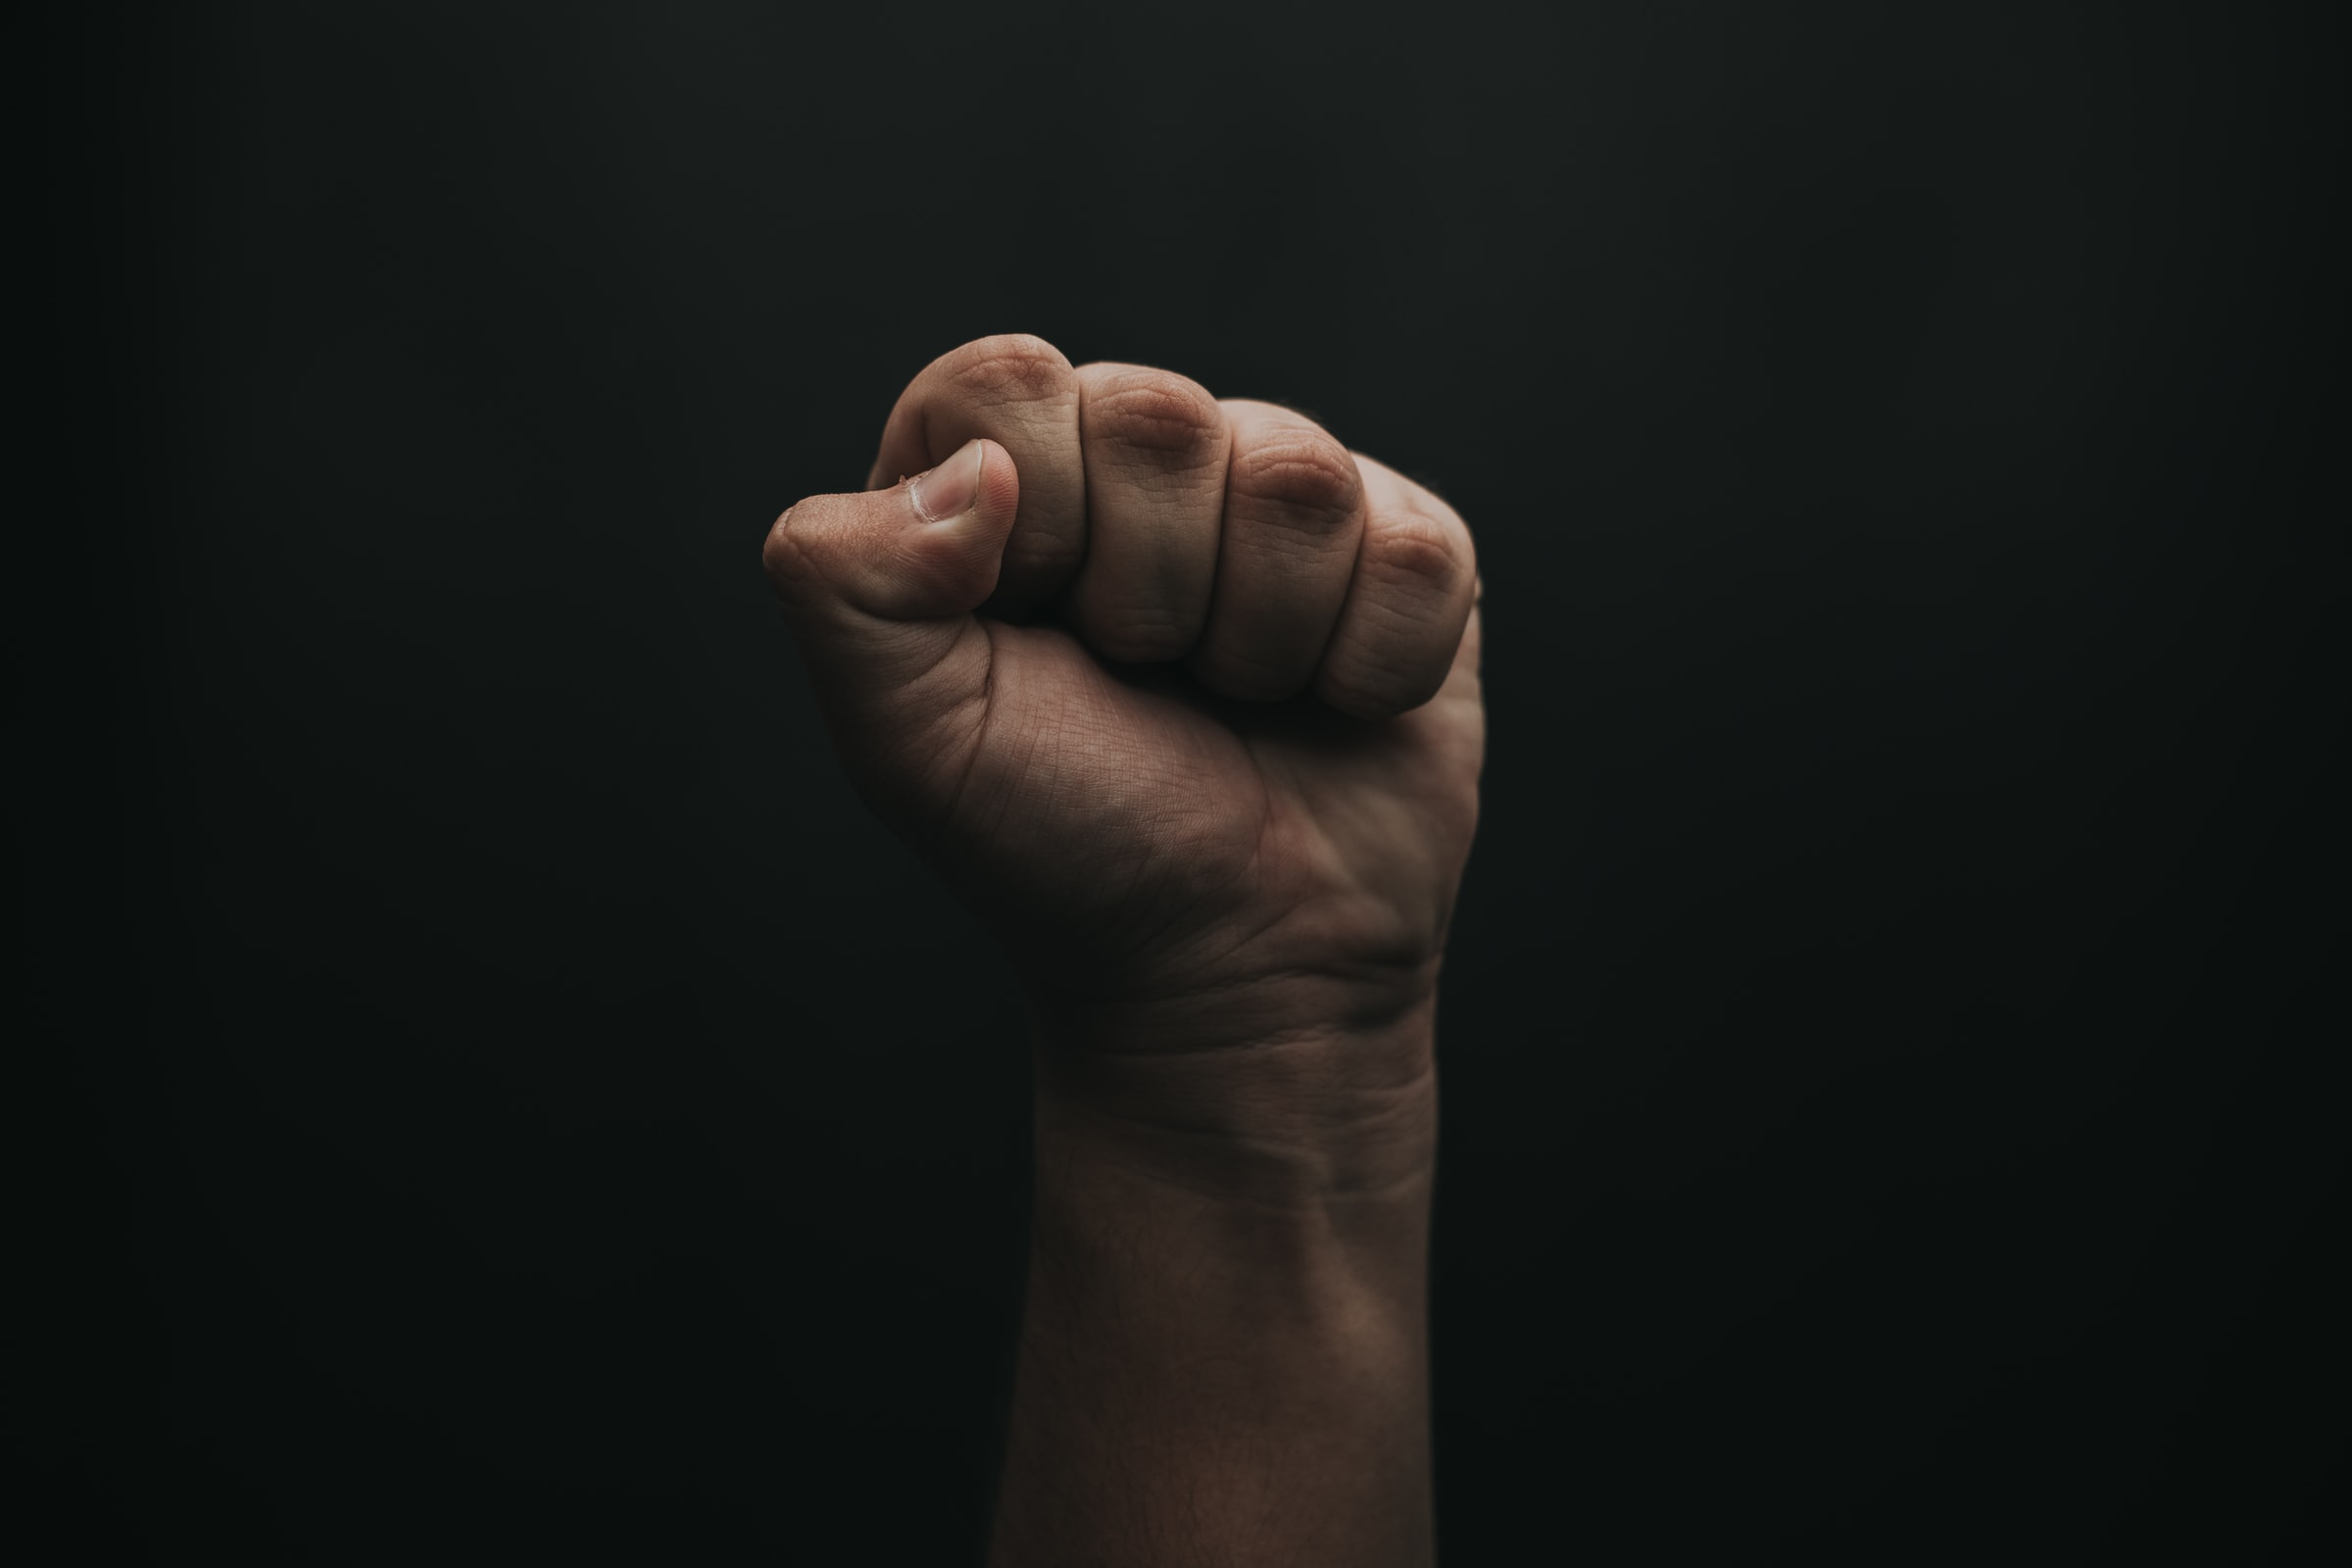 clenched fist raised in air against dark background